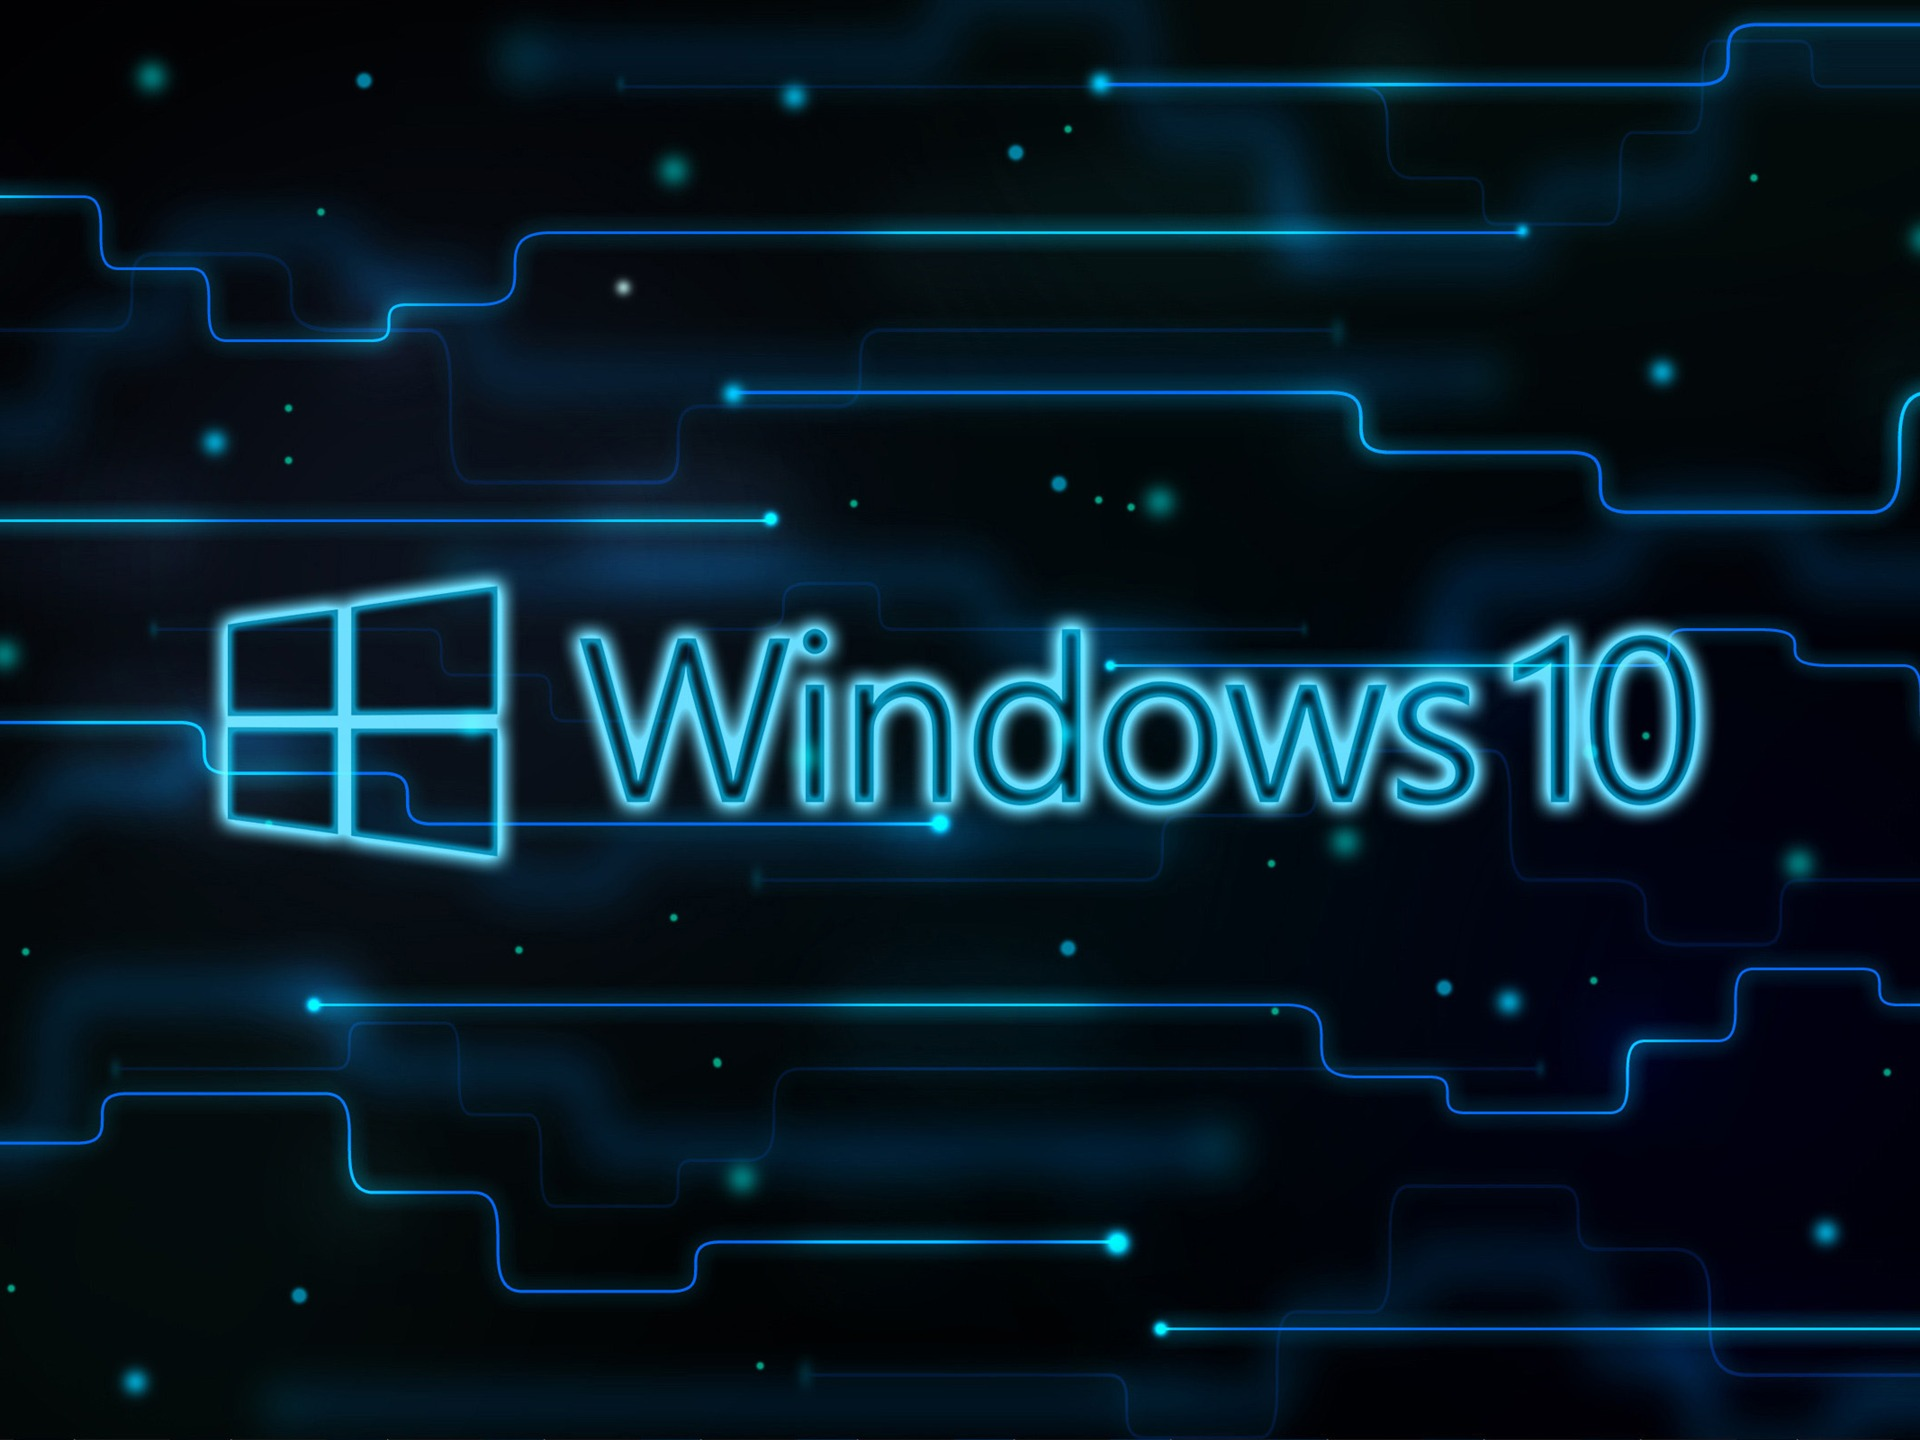 Windows 10 Hd Theme Desktop Wallpaper 13 Preview